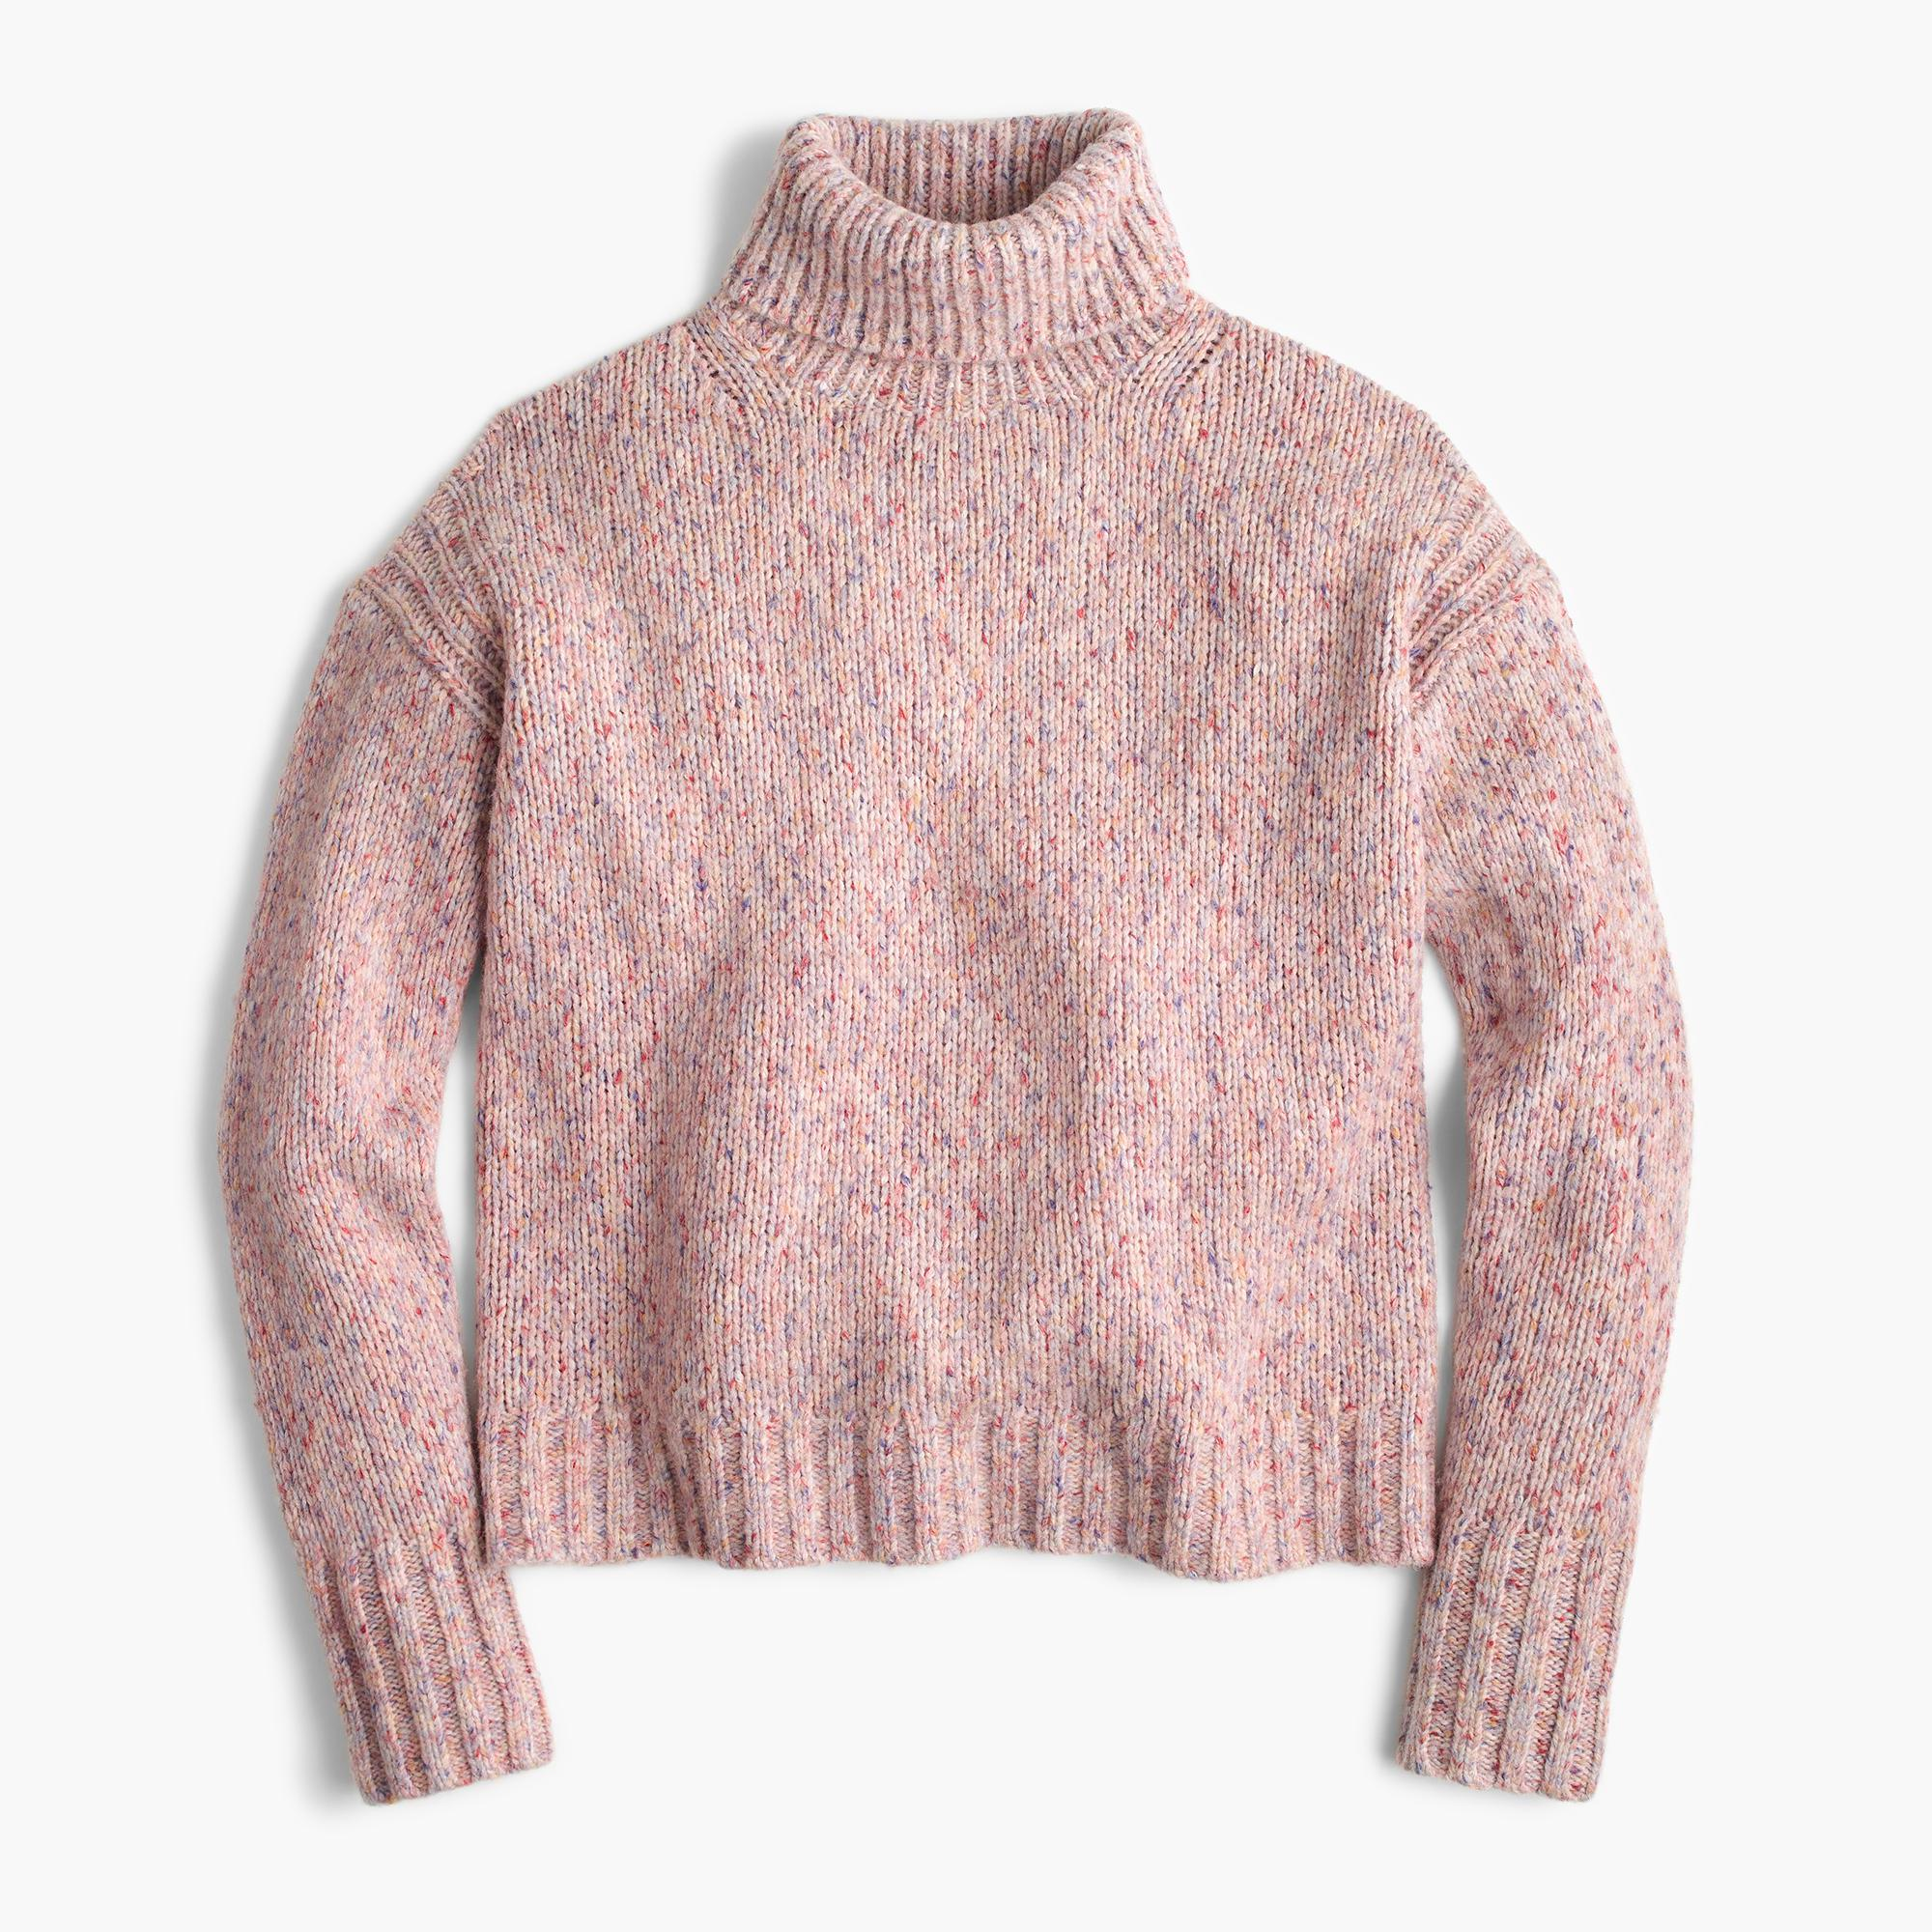 J.crew Marled Wool Turtleneck Sweater in Pink | Lyst